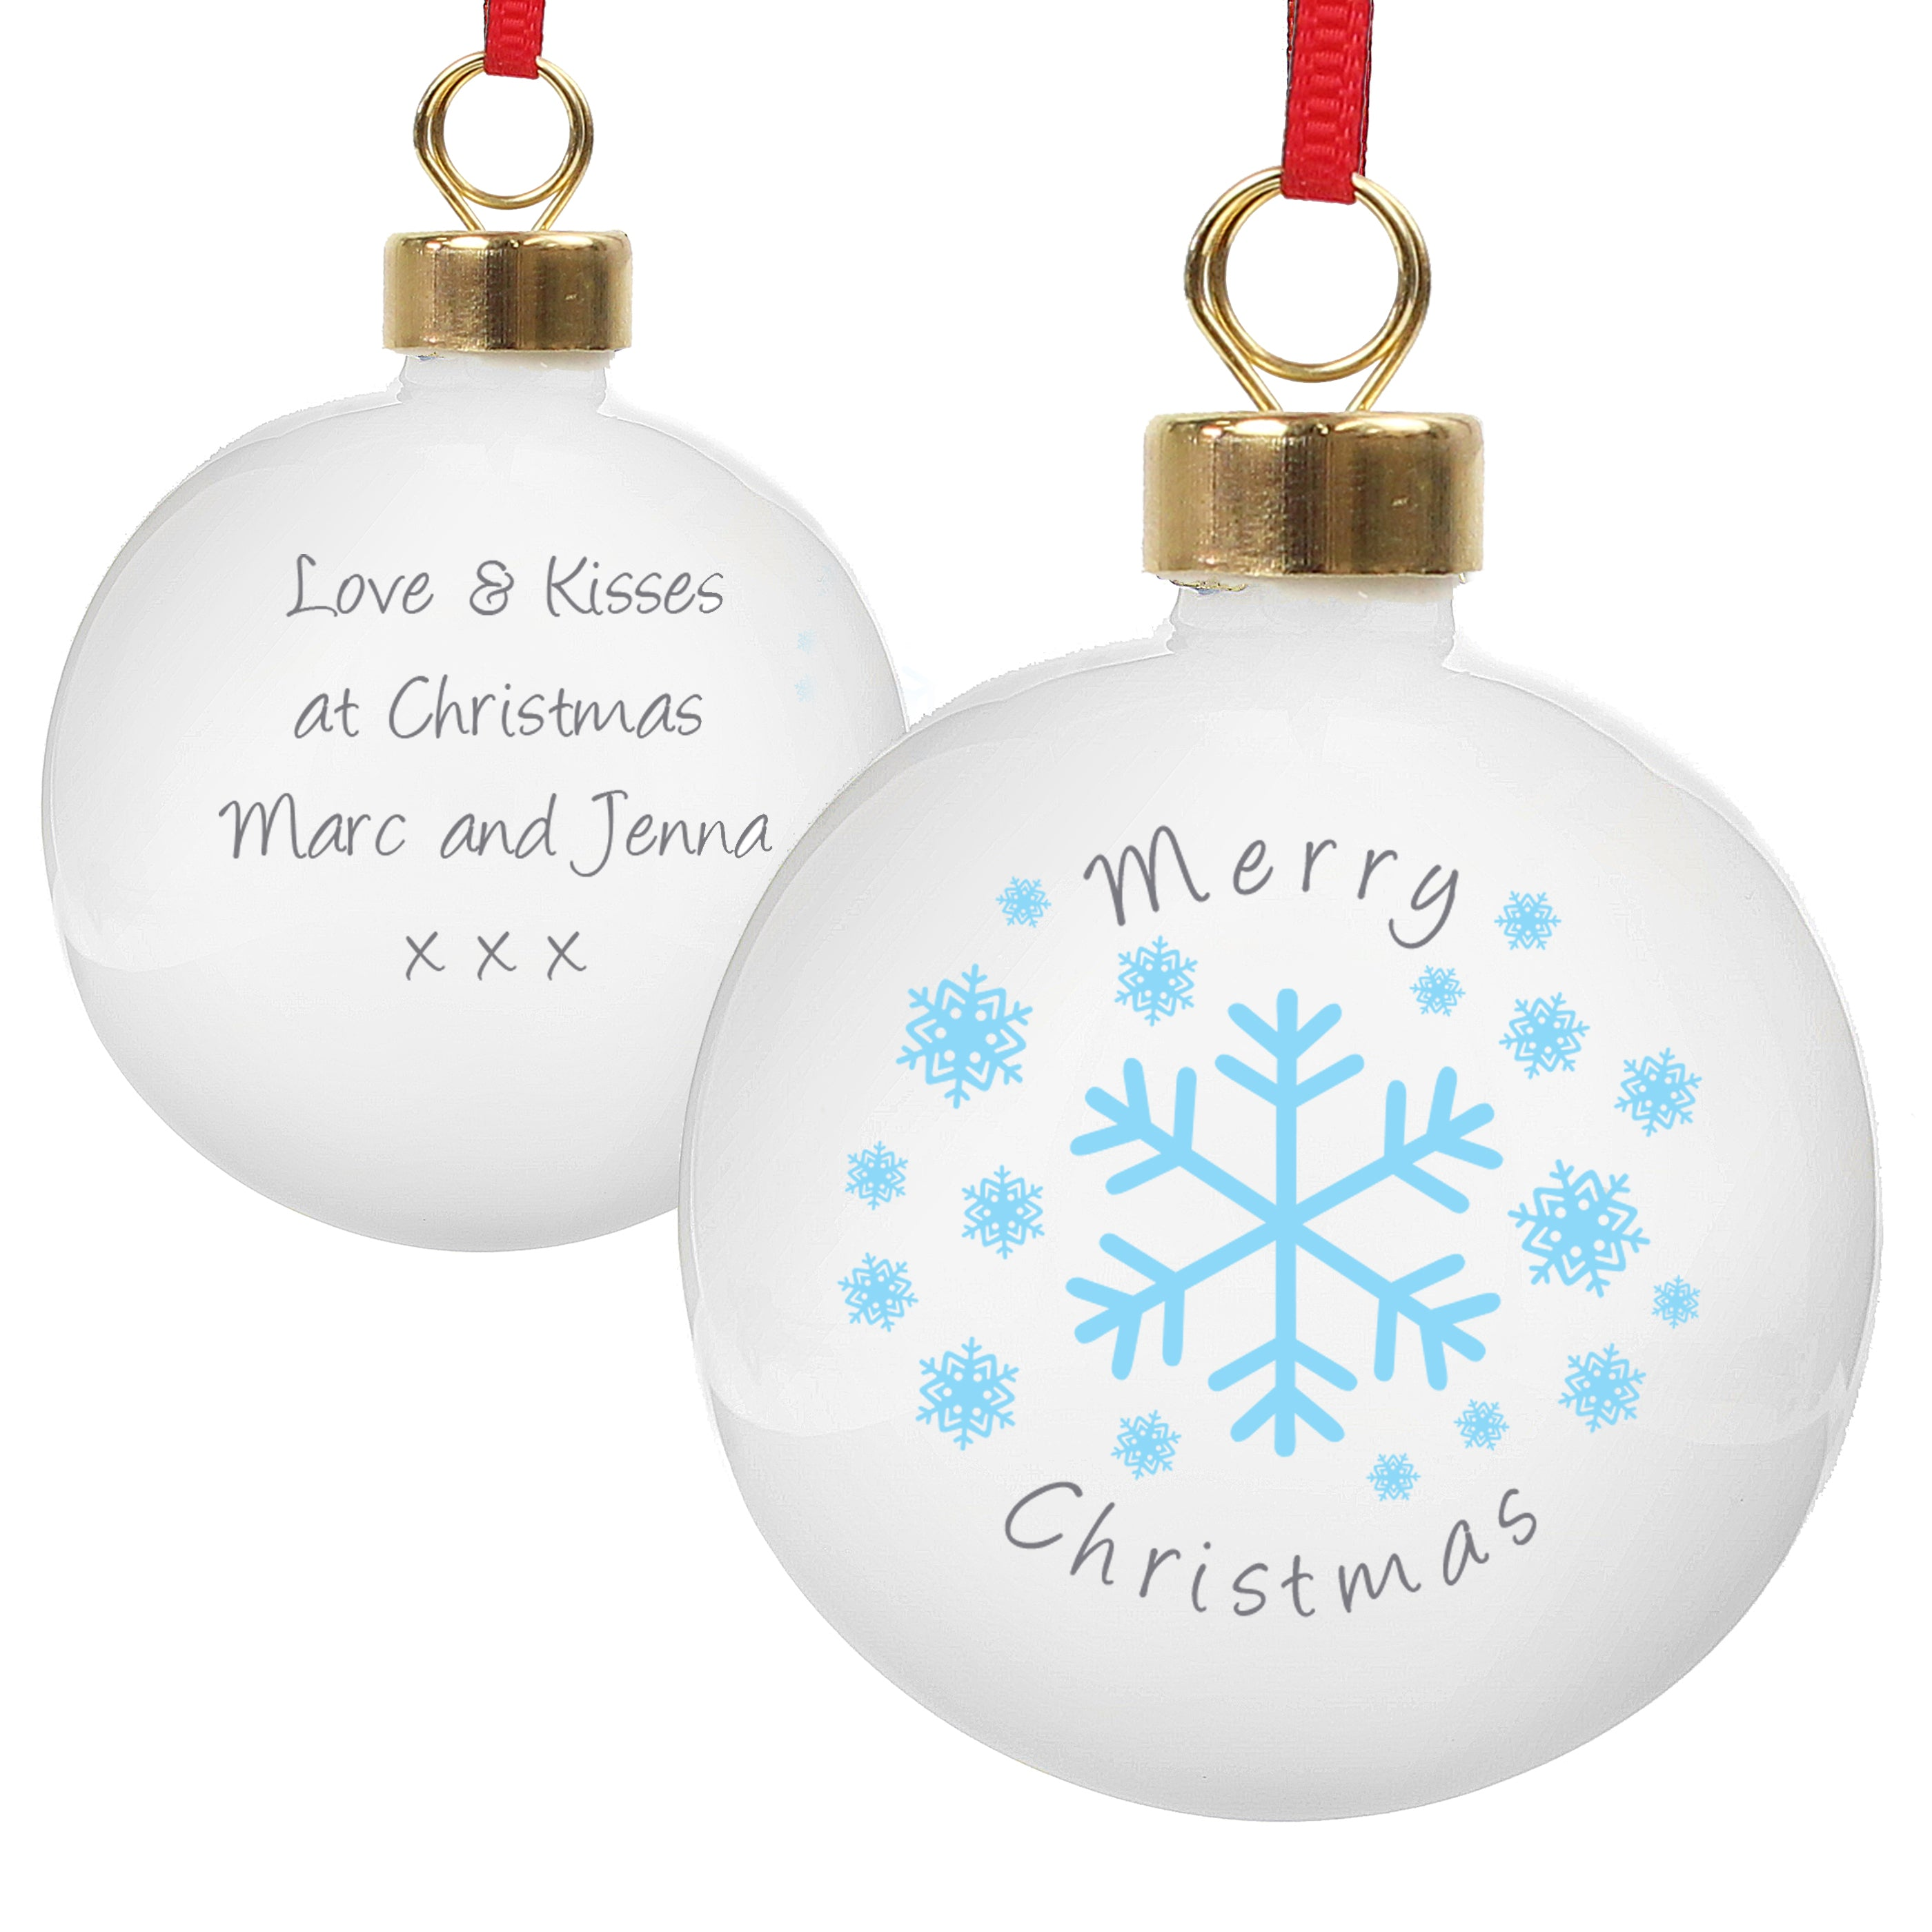 Personalised white ceramic round Christmas tree bauble featuring a blue snowflake design on the front and the words 'Merry Christmas' in black. The rear of the bauble can be personalised with your own message over 4 lines in a black font.